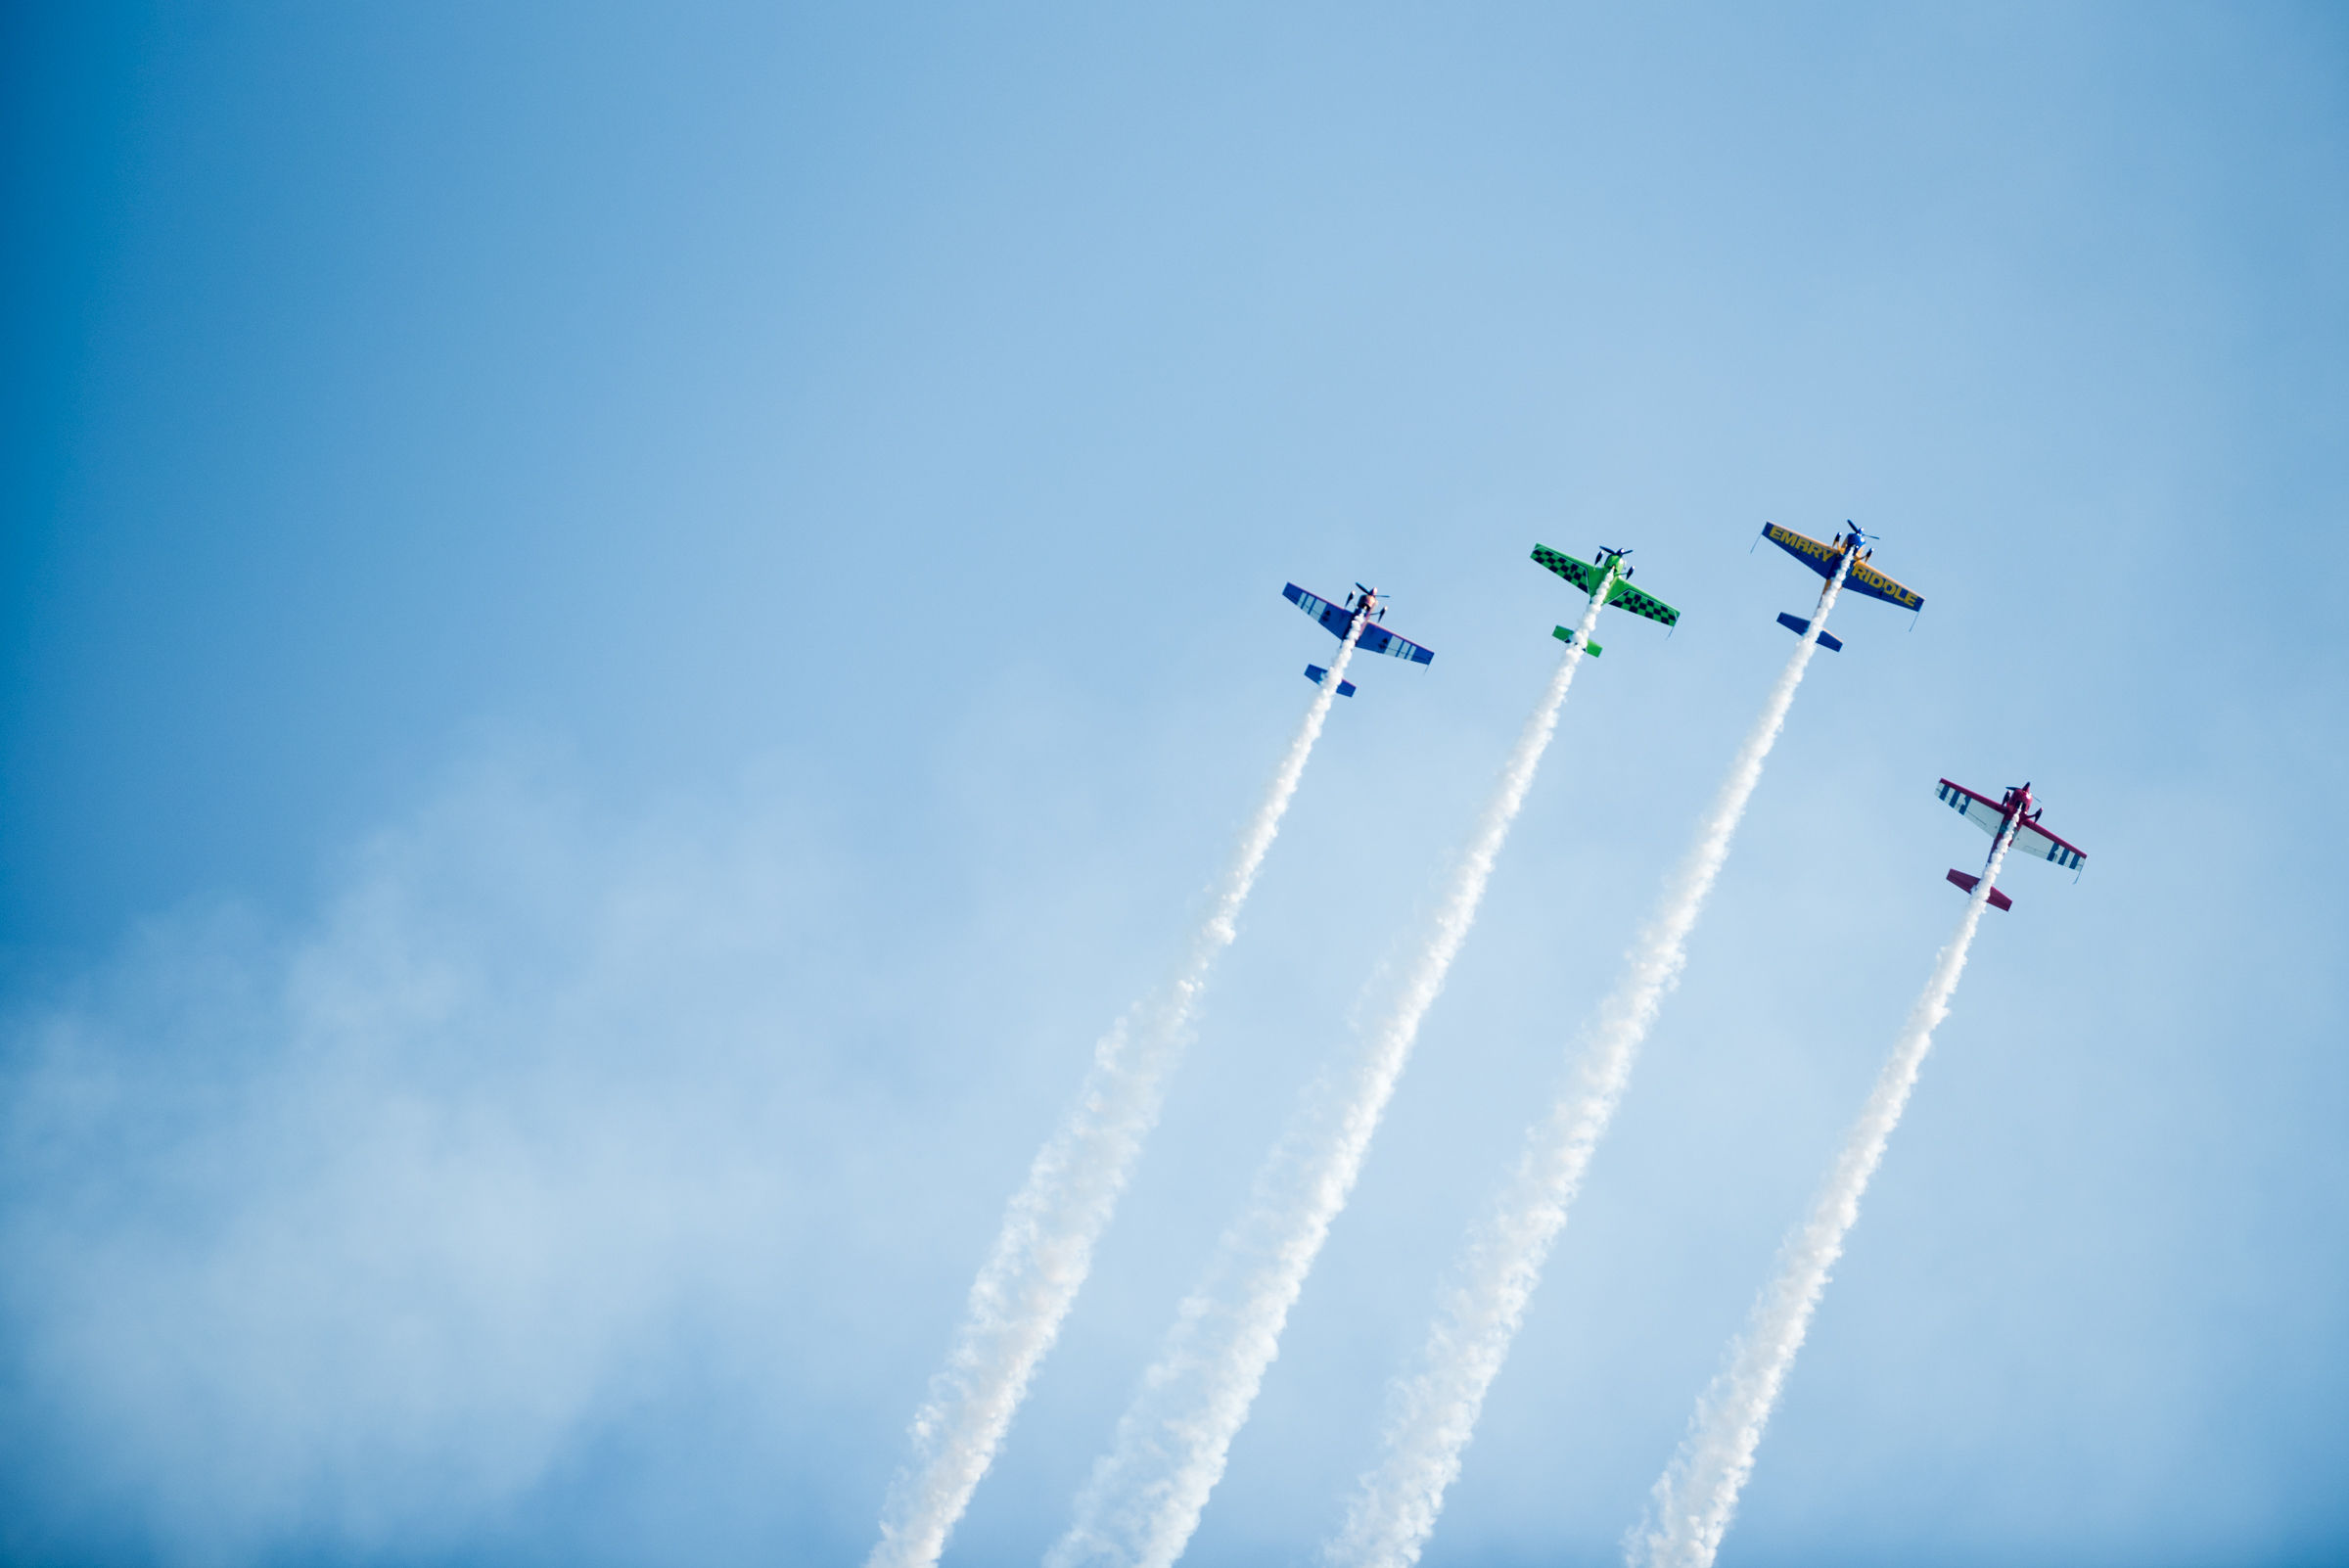 Check out photos of the high-flying stunts at the Chicago Air and Water Show